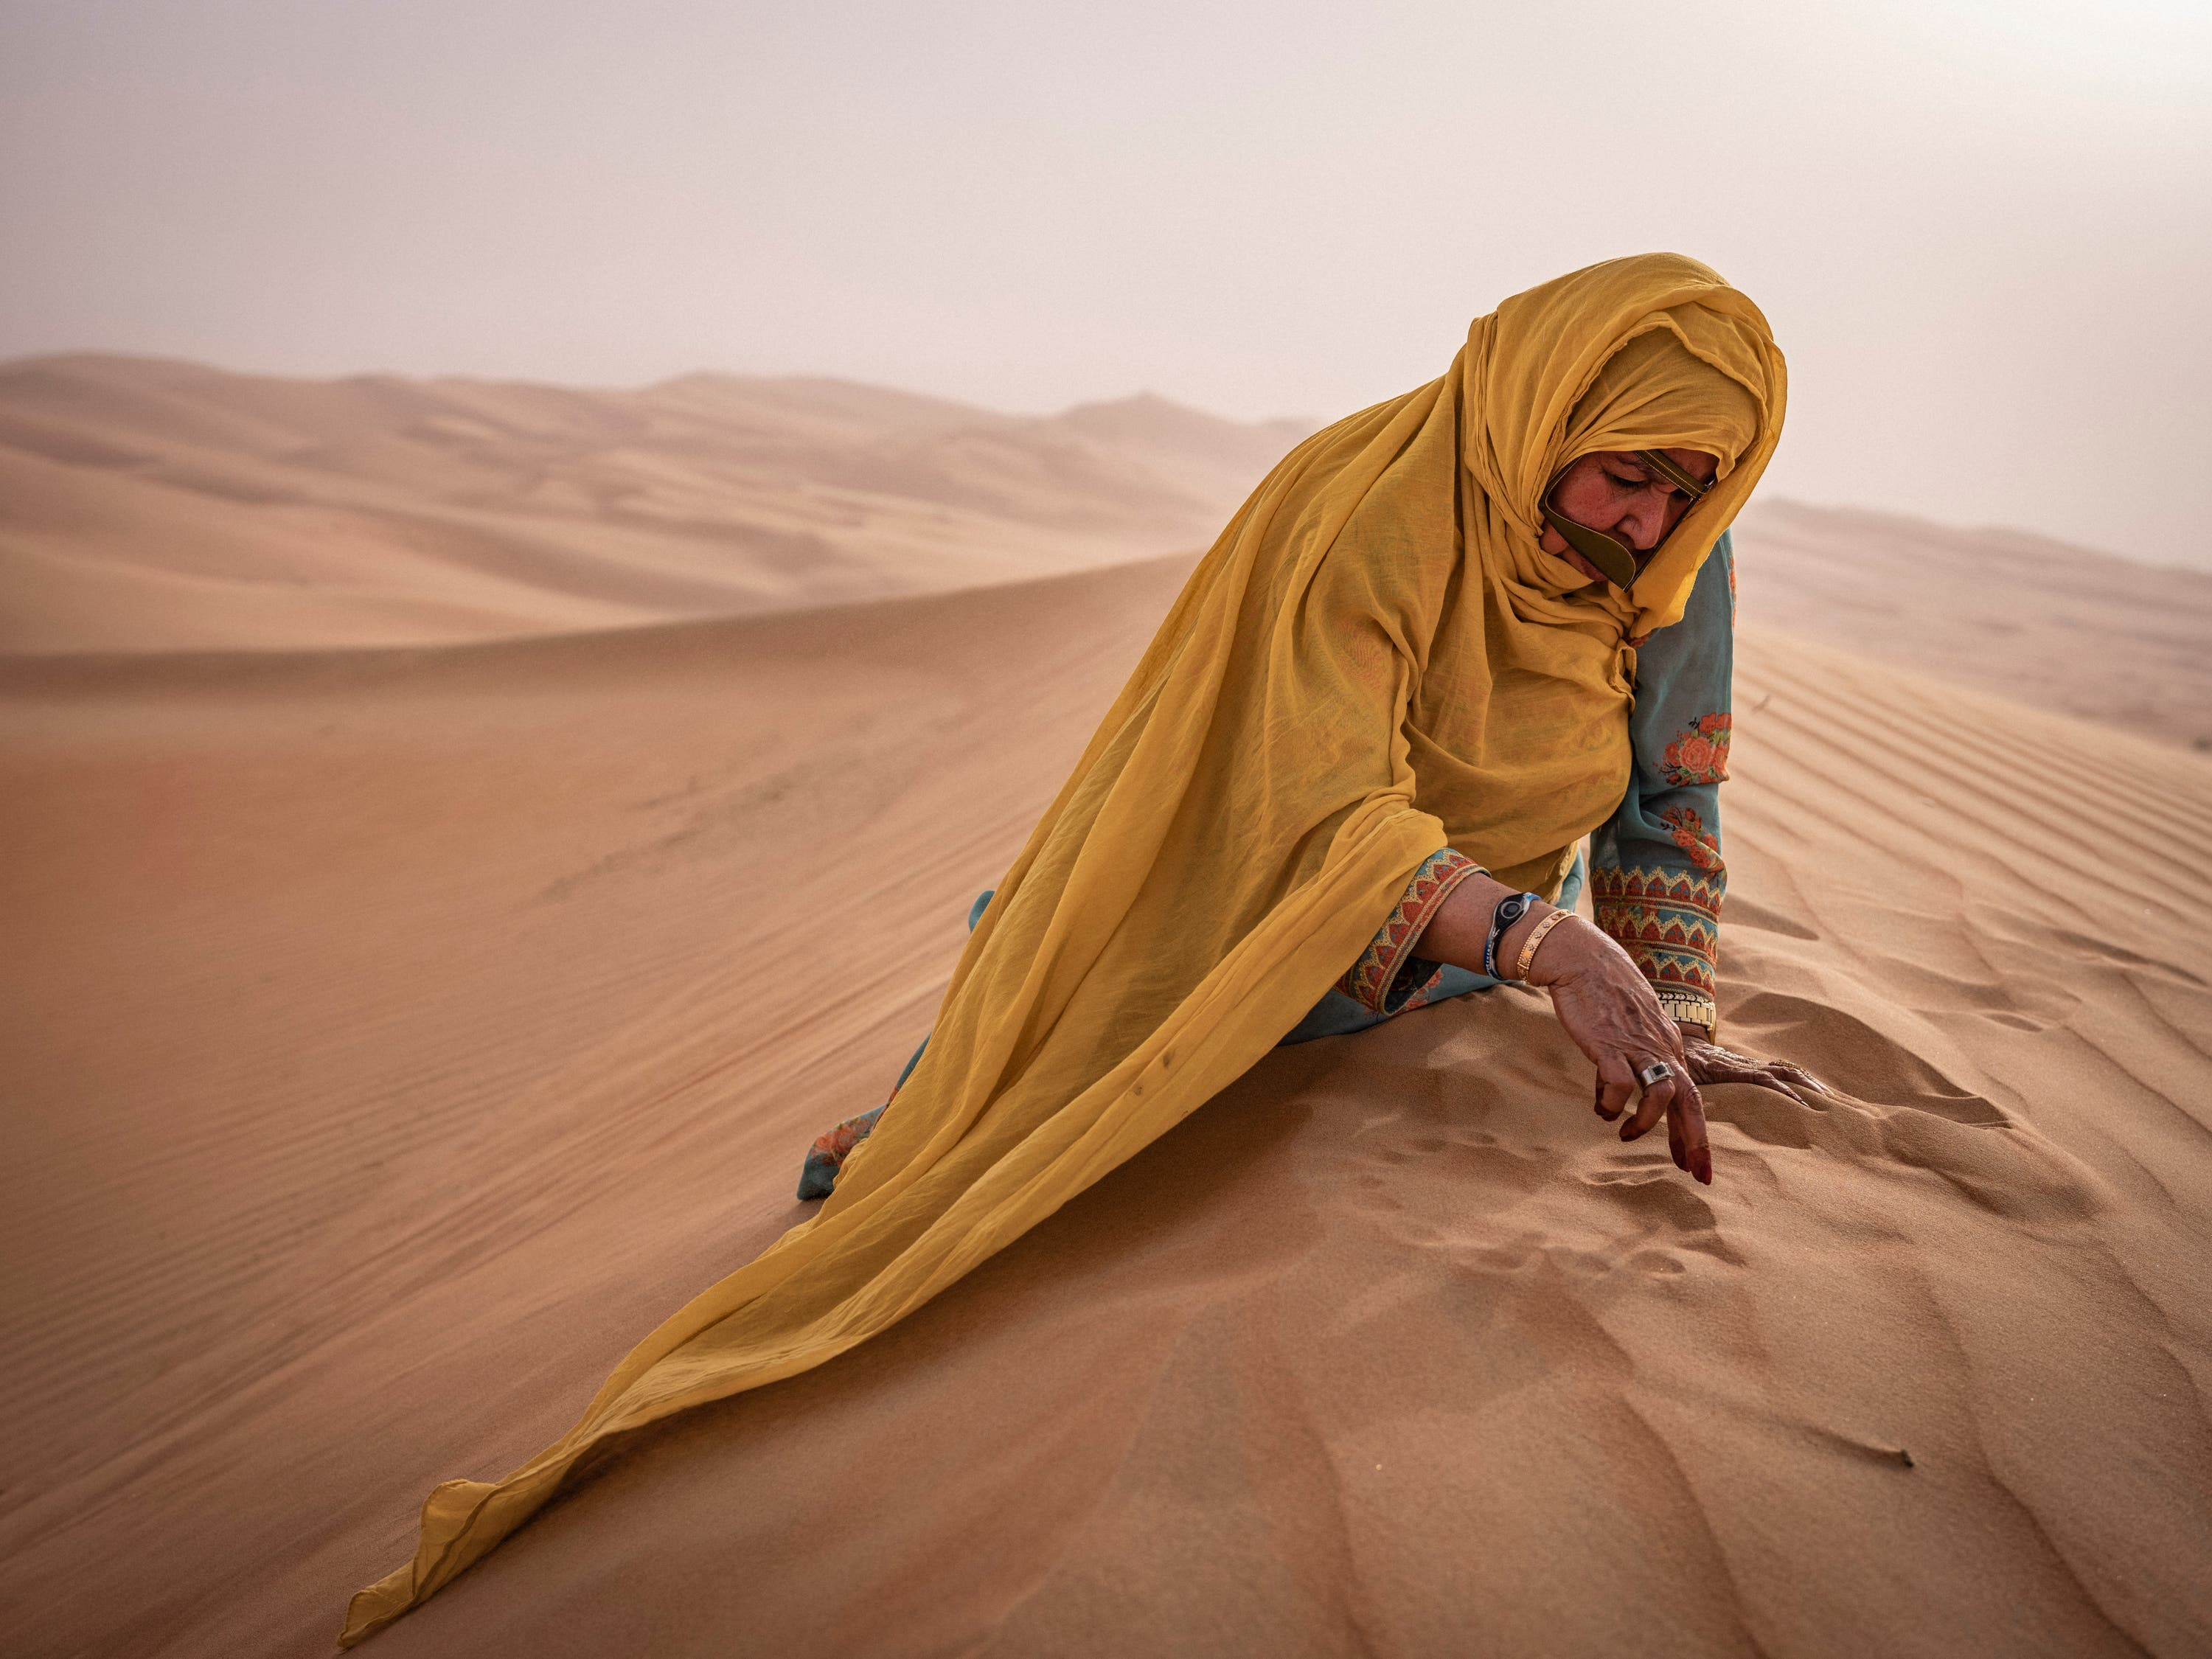 Katarina Premfors's Photos of the Middle East Make Us Swoon